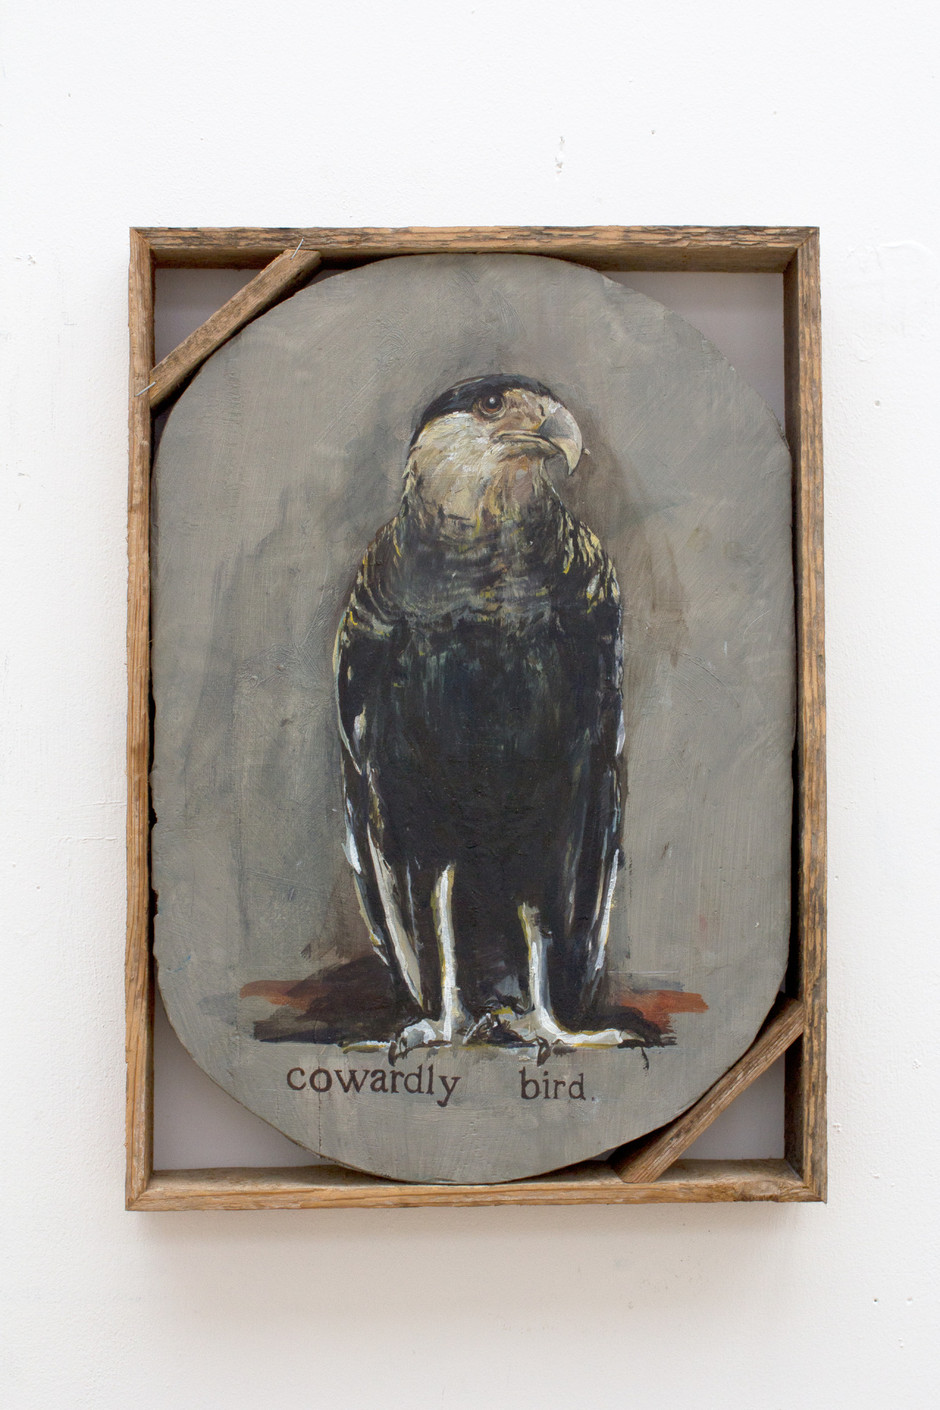 Untitled (Cowardly bird) - Isa De Leener